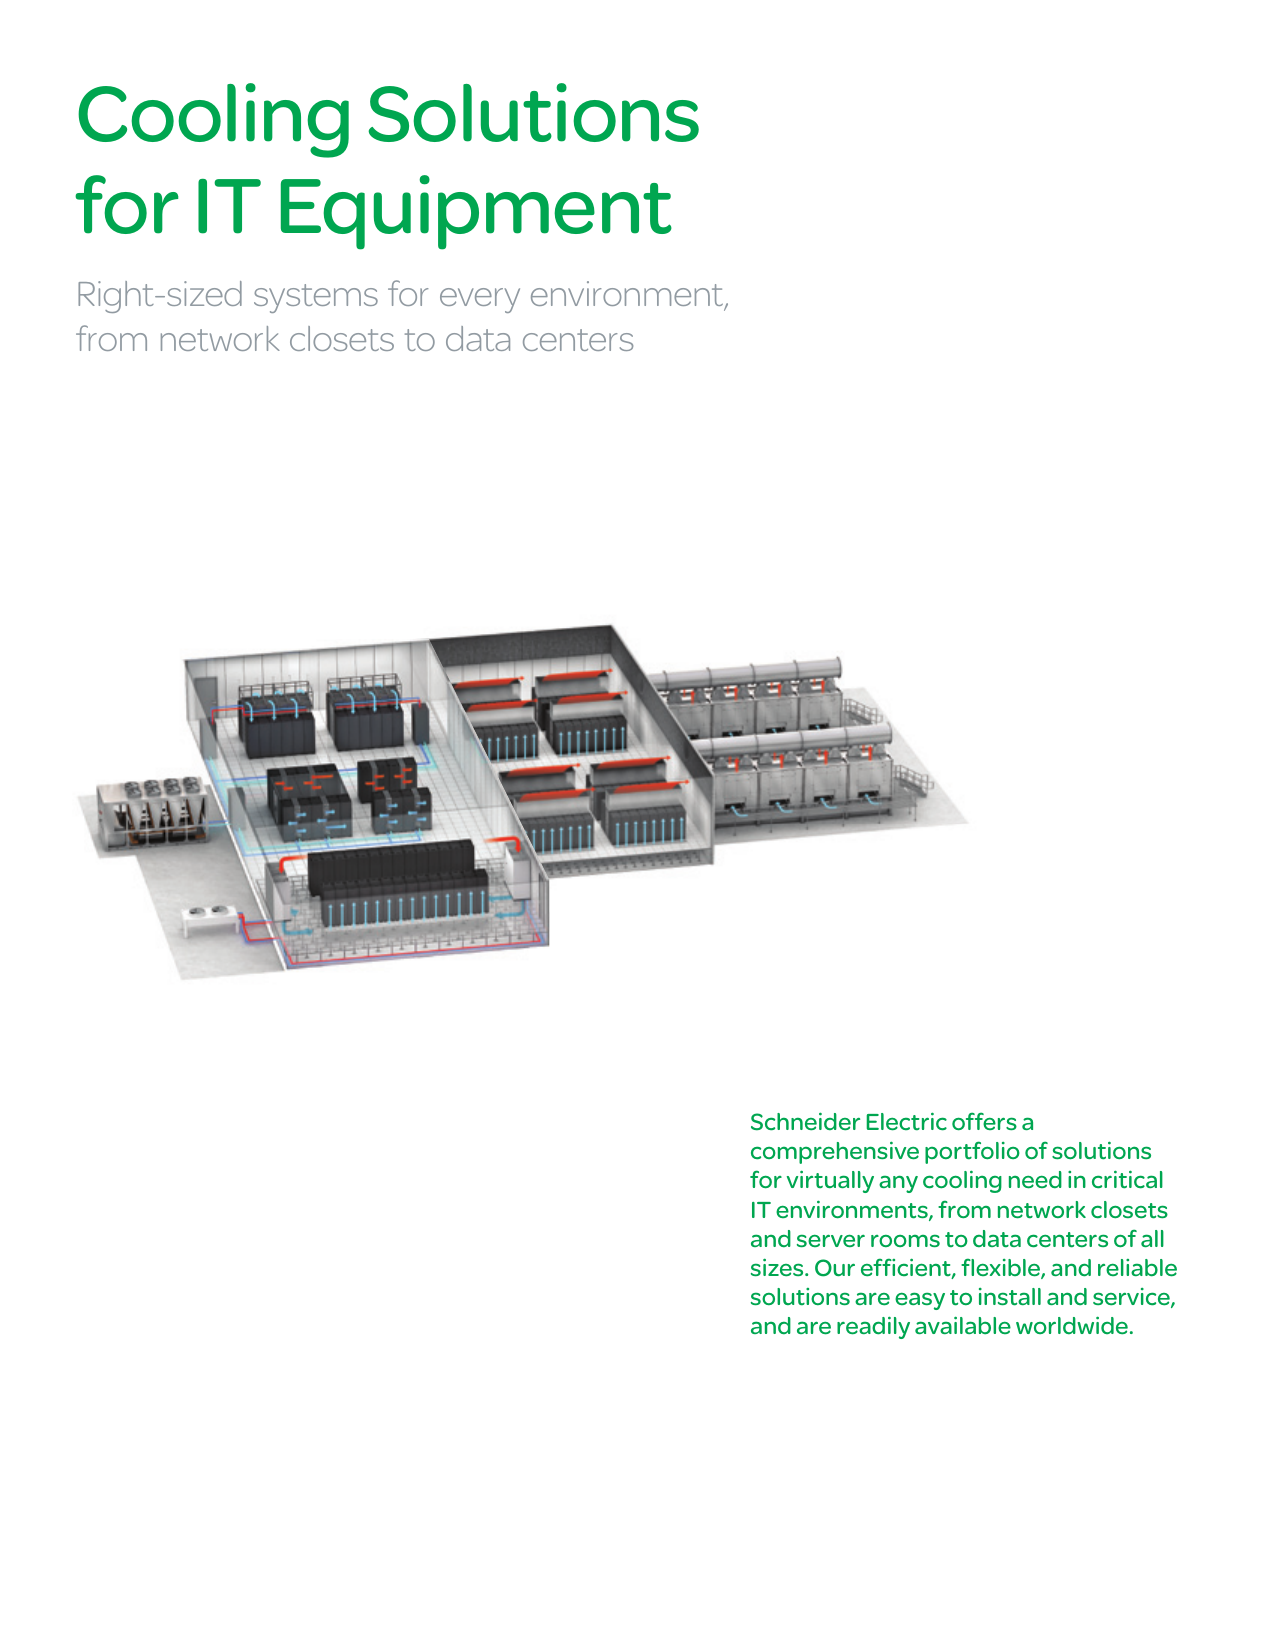 Cooling Solutions For It Equipment Wiring Closet 018813874 1 328c05a0796a0e16a6a468c80541c11e